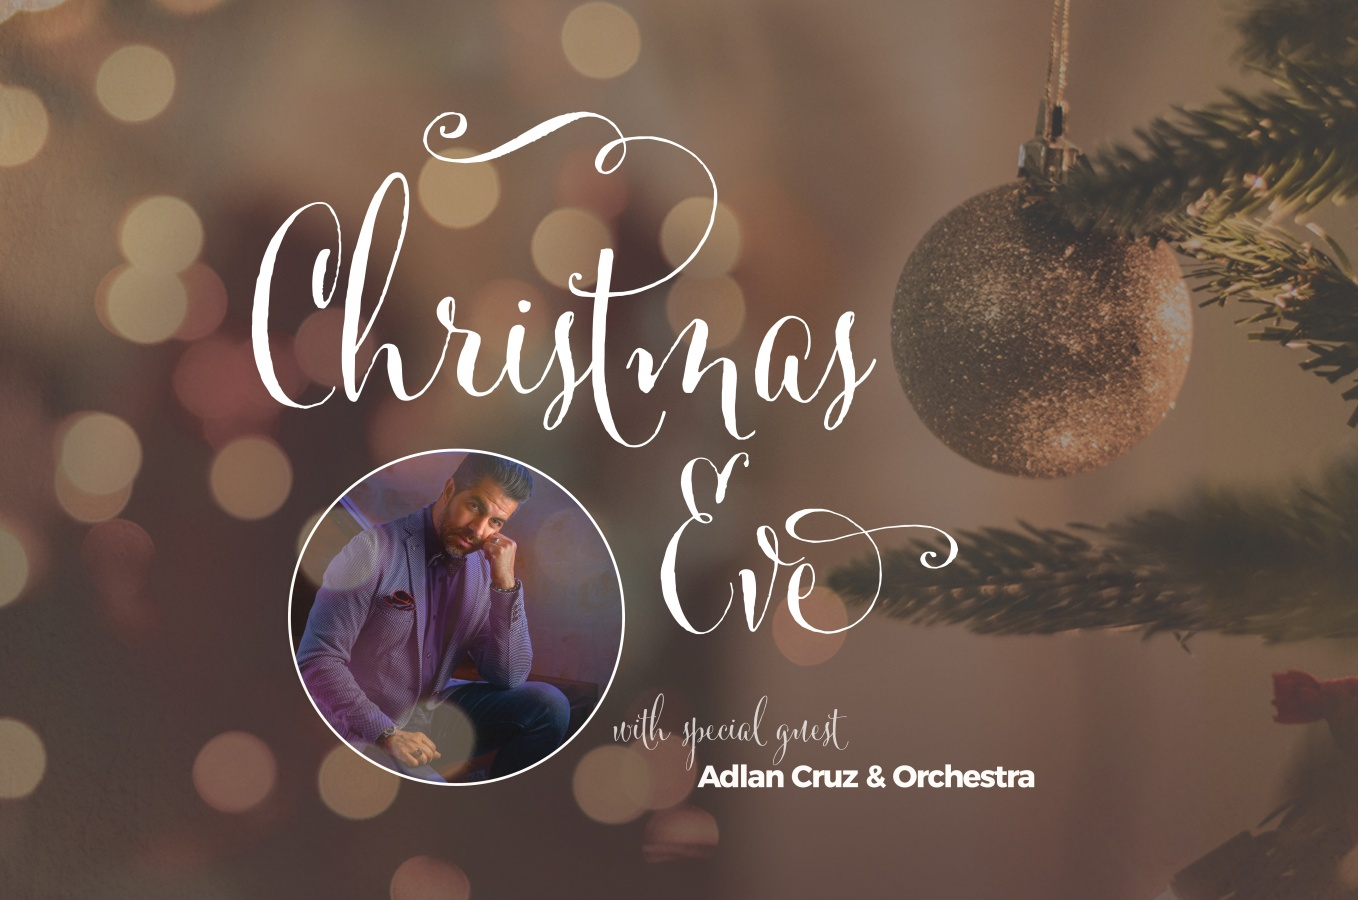 Christmas Eve at The River with Special Guest Adlan Cruz & Orchestra